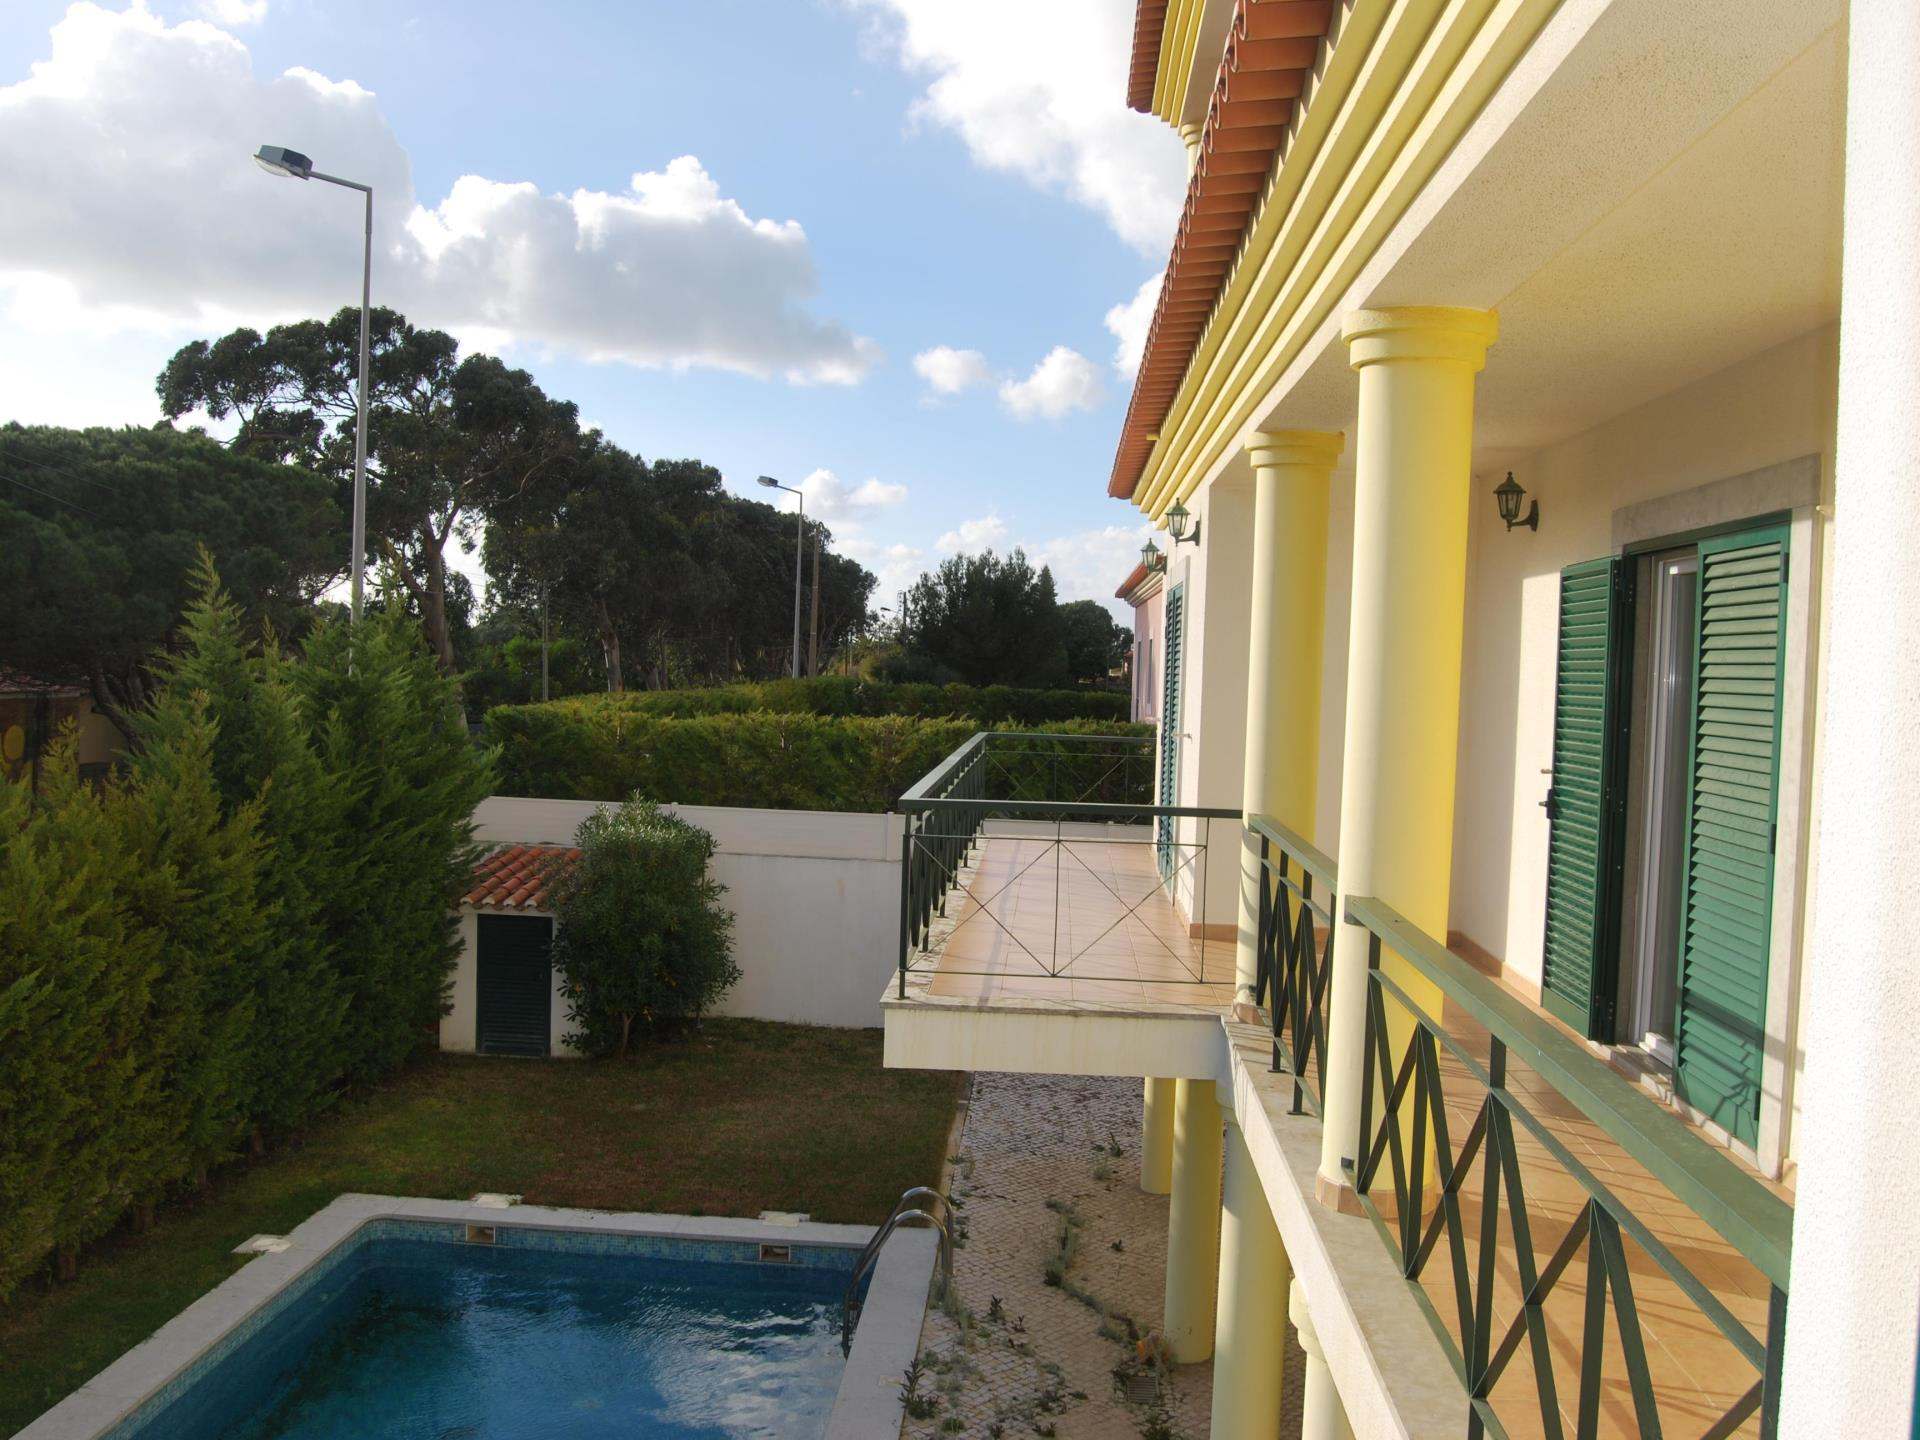 Tek Ailelik Ev için Satış at Detached house, 5 bedrooms, for Sale Cascais, Lisboa Portekiz